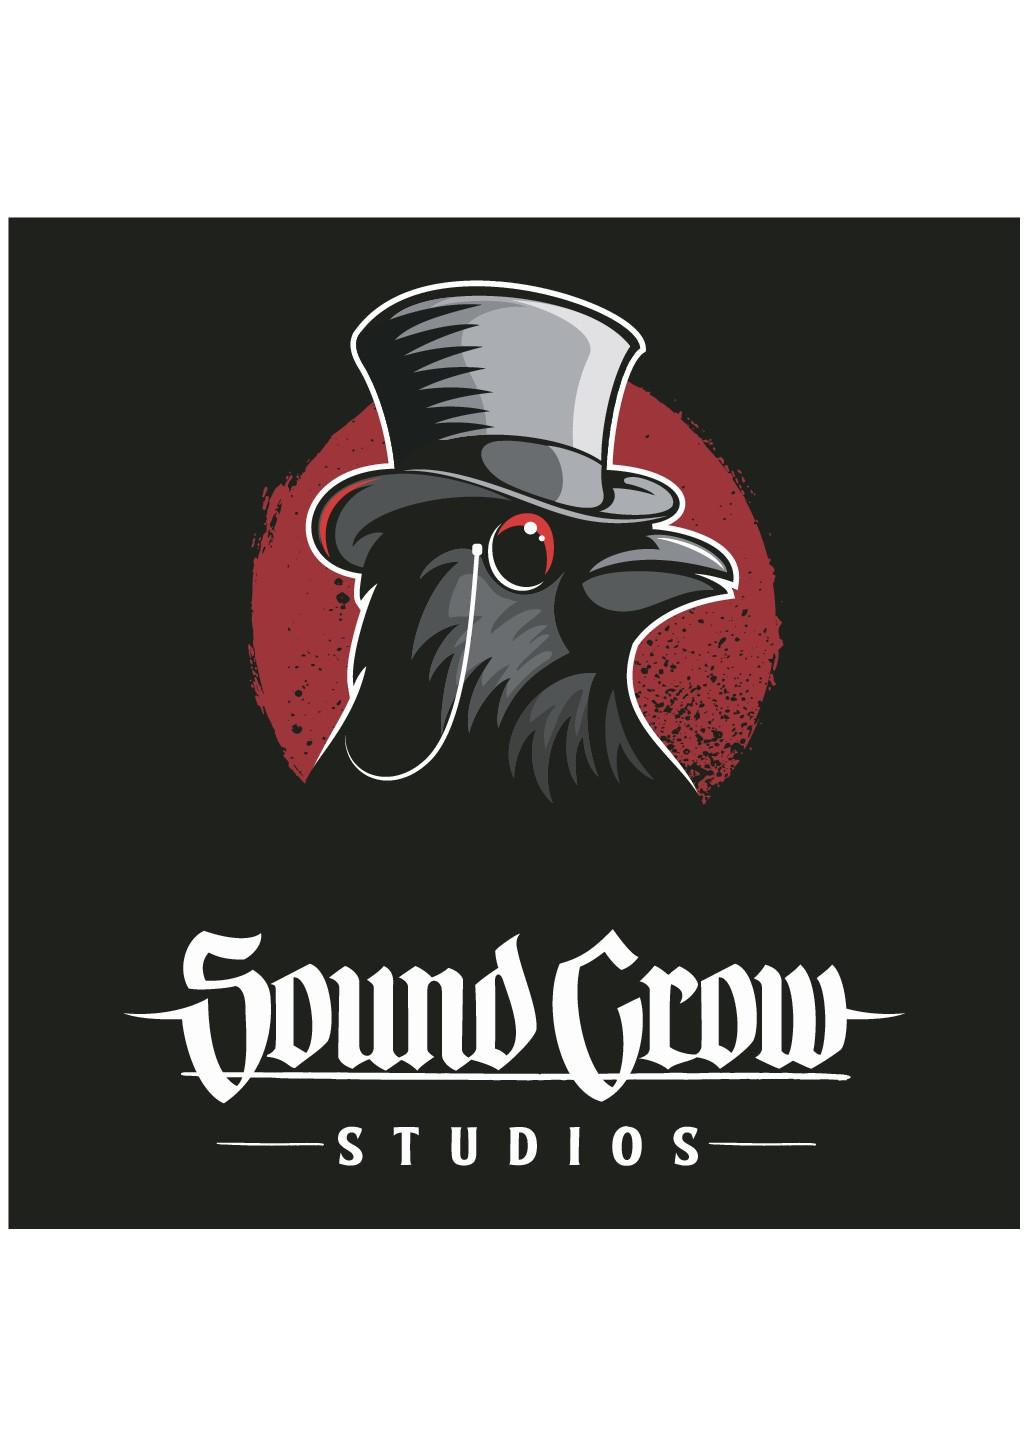 Original Crow Design with a top hat and eyeglass Edgar Allan Poe Vibe black and white